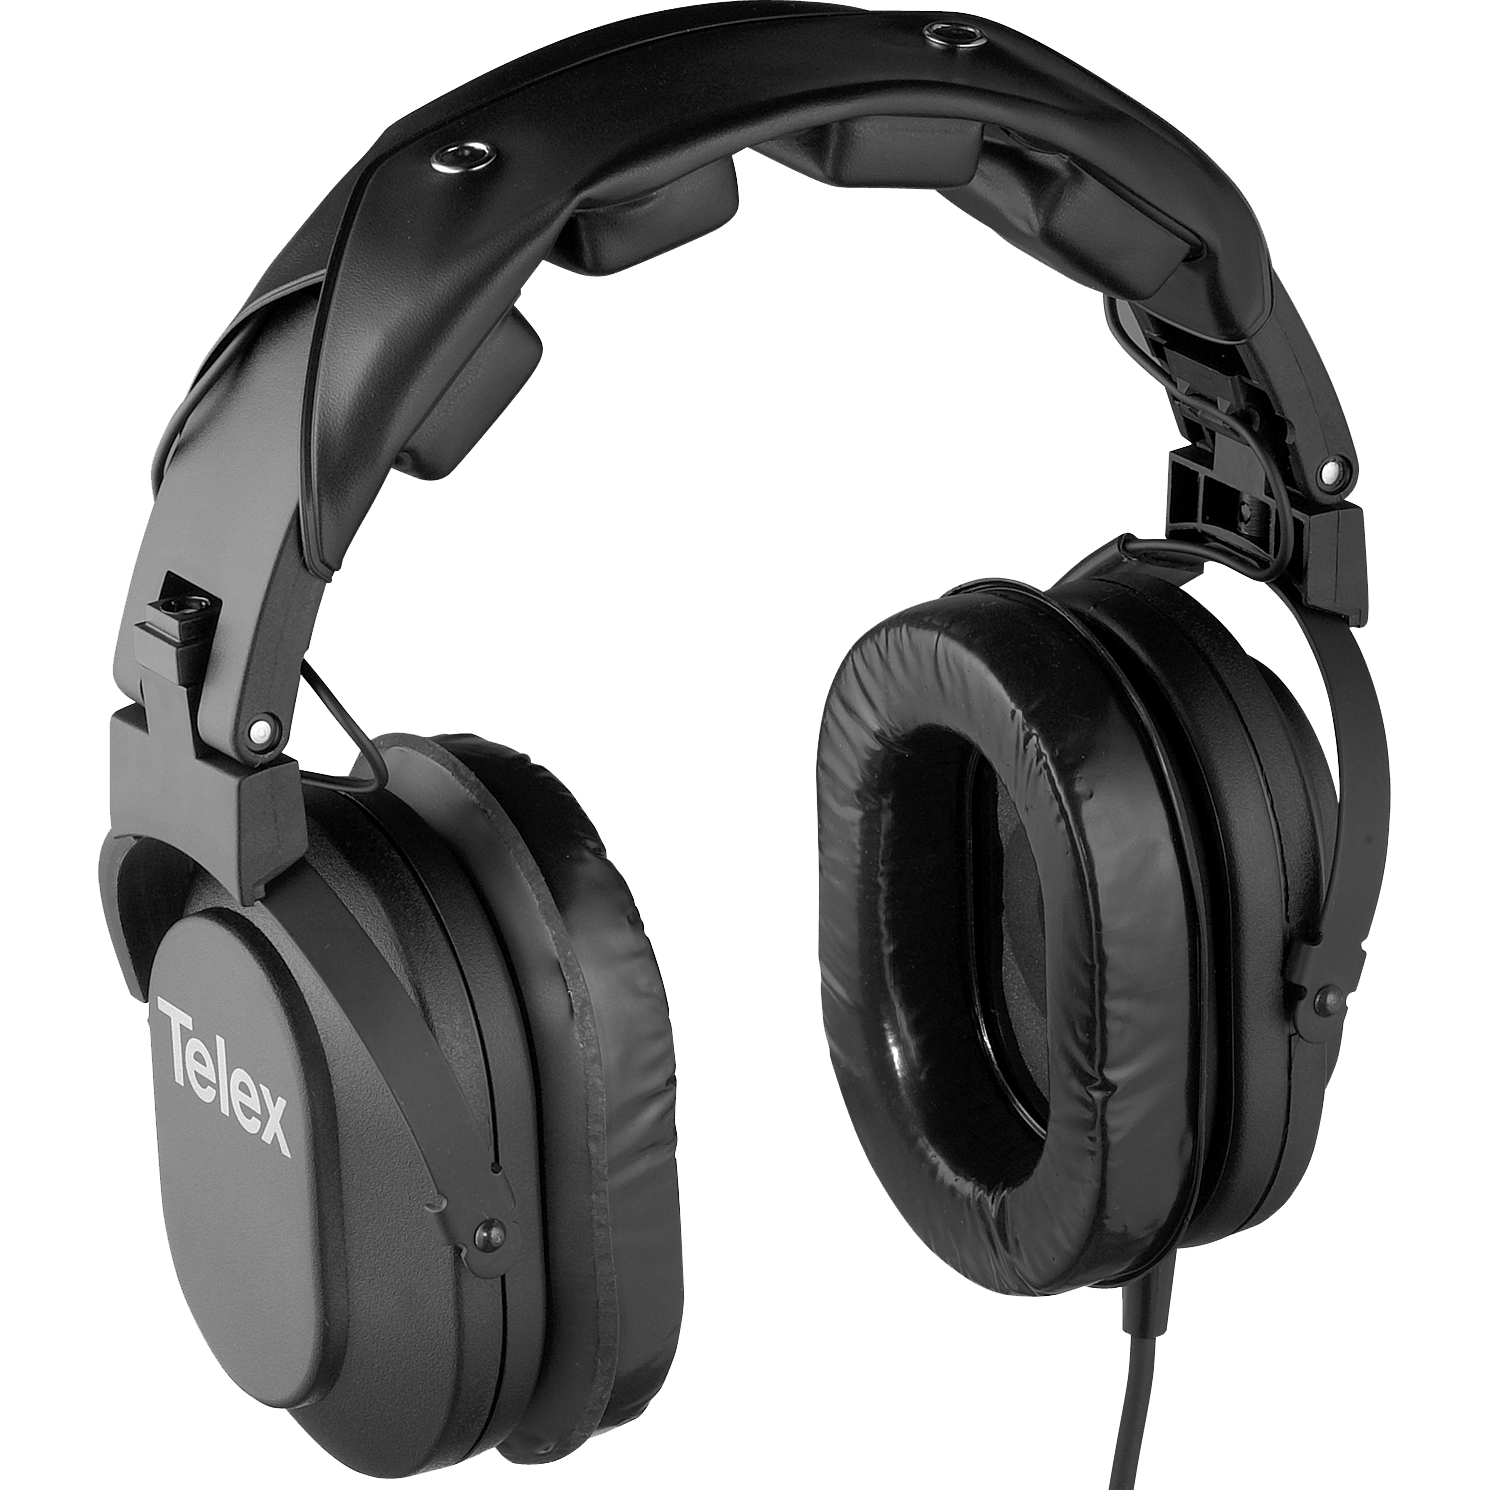 Png Download High-quality Headphones image #20163